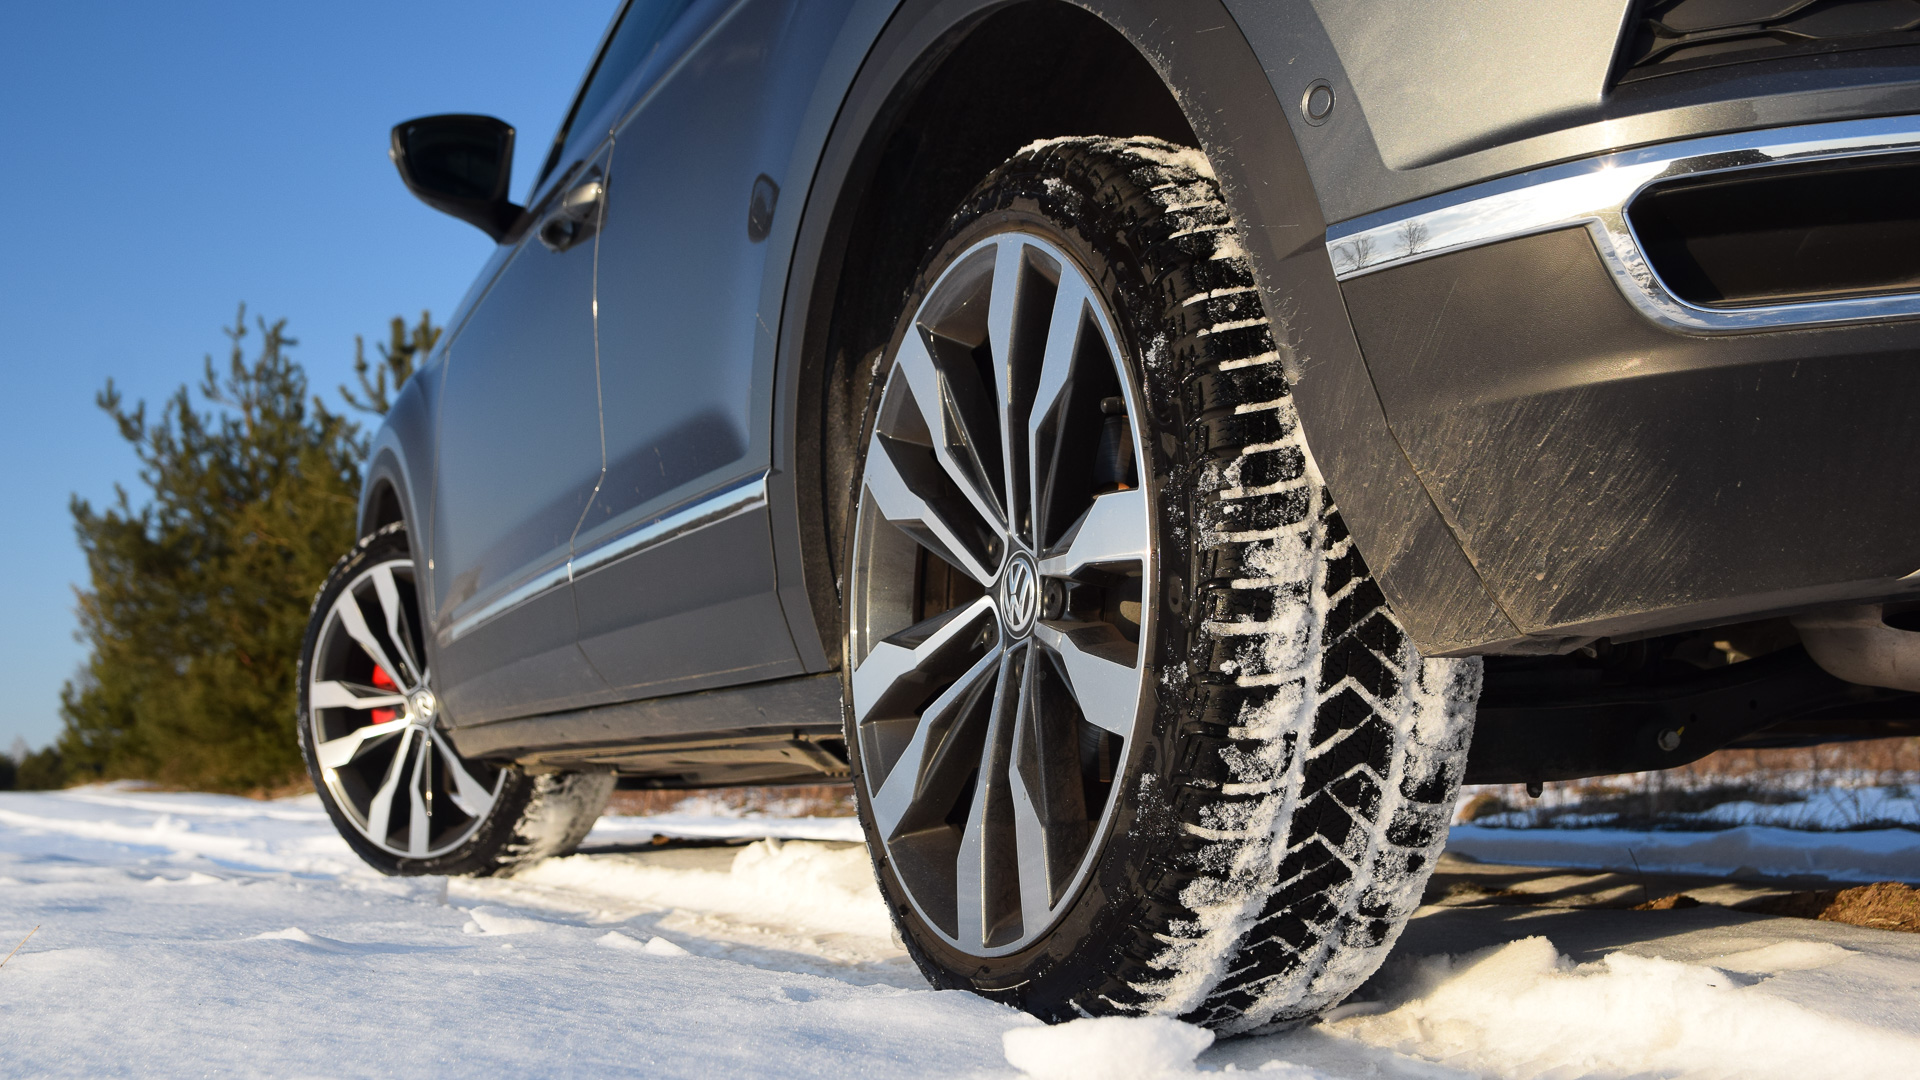 13 Things You Should Do To Keep Your Car Running Smoothly All Winter